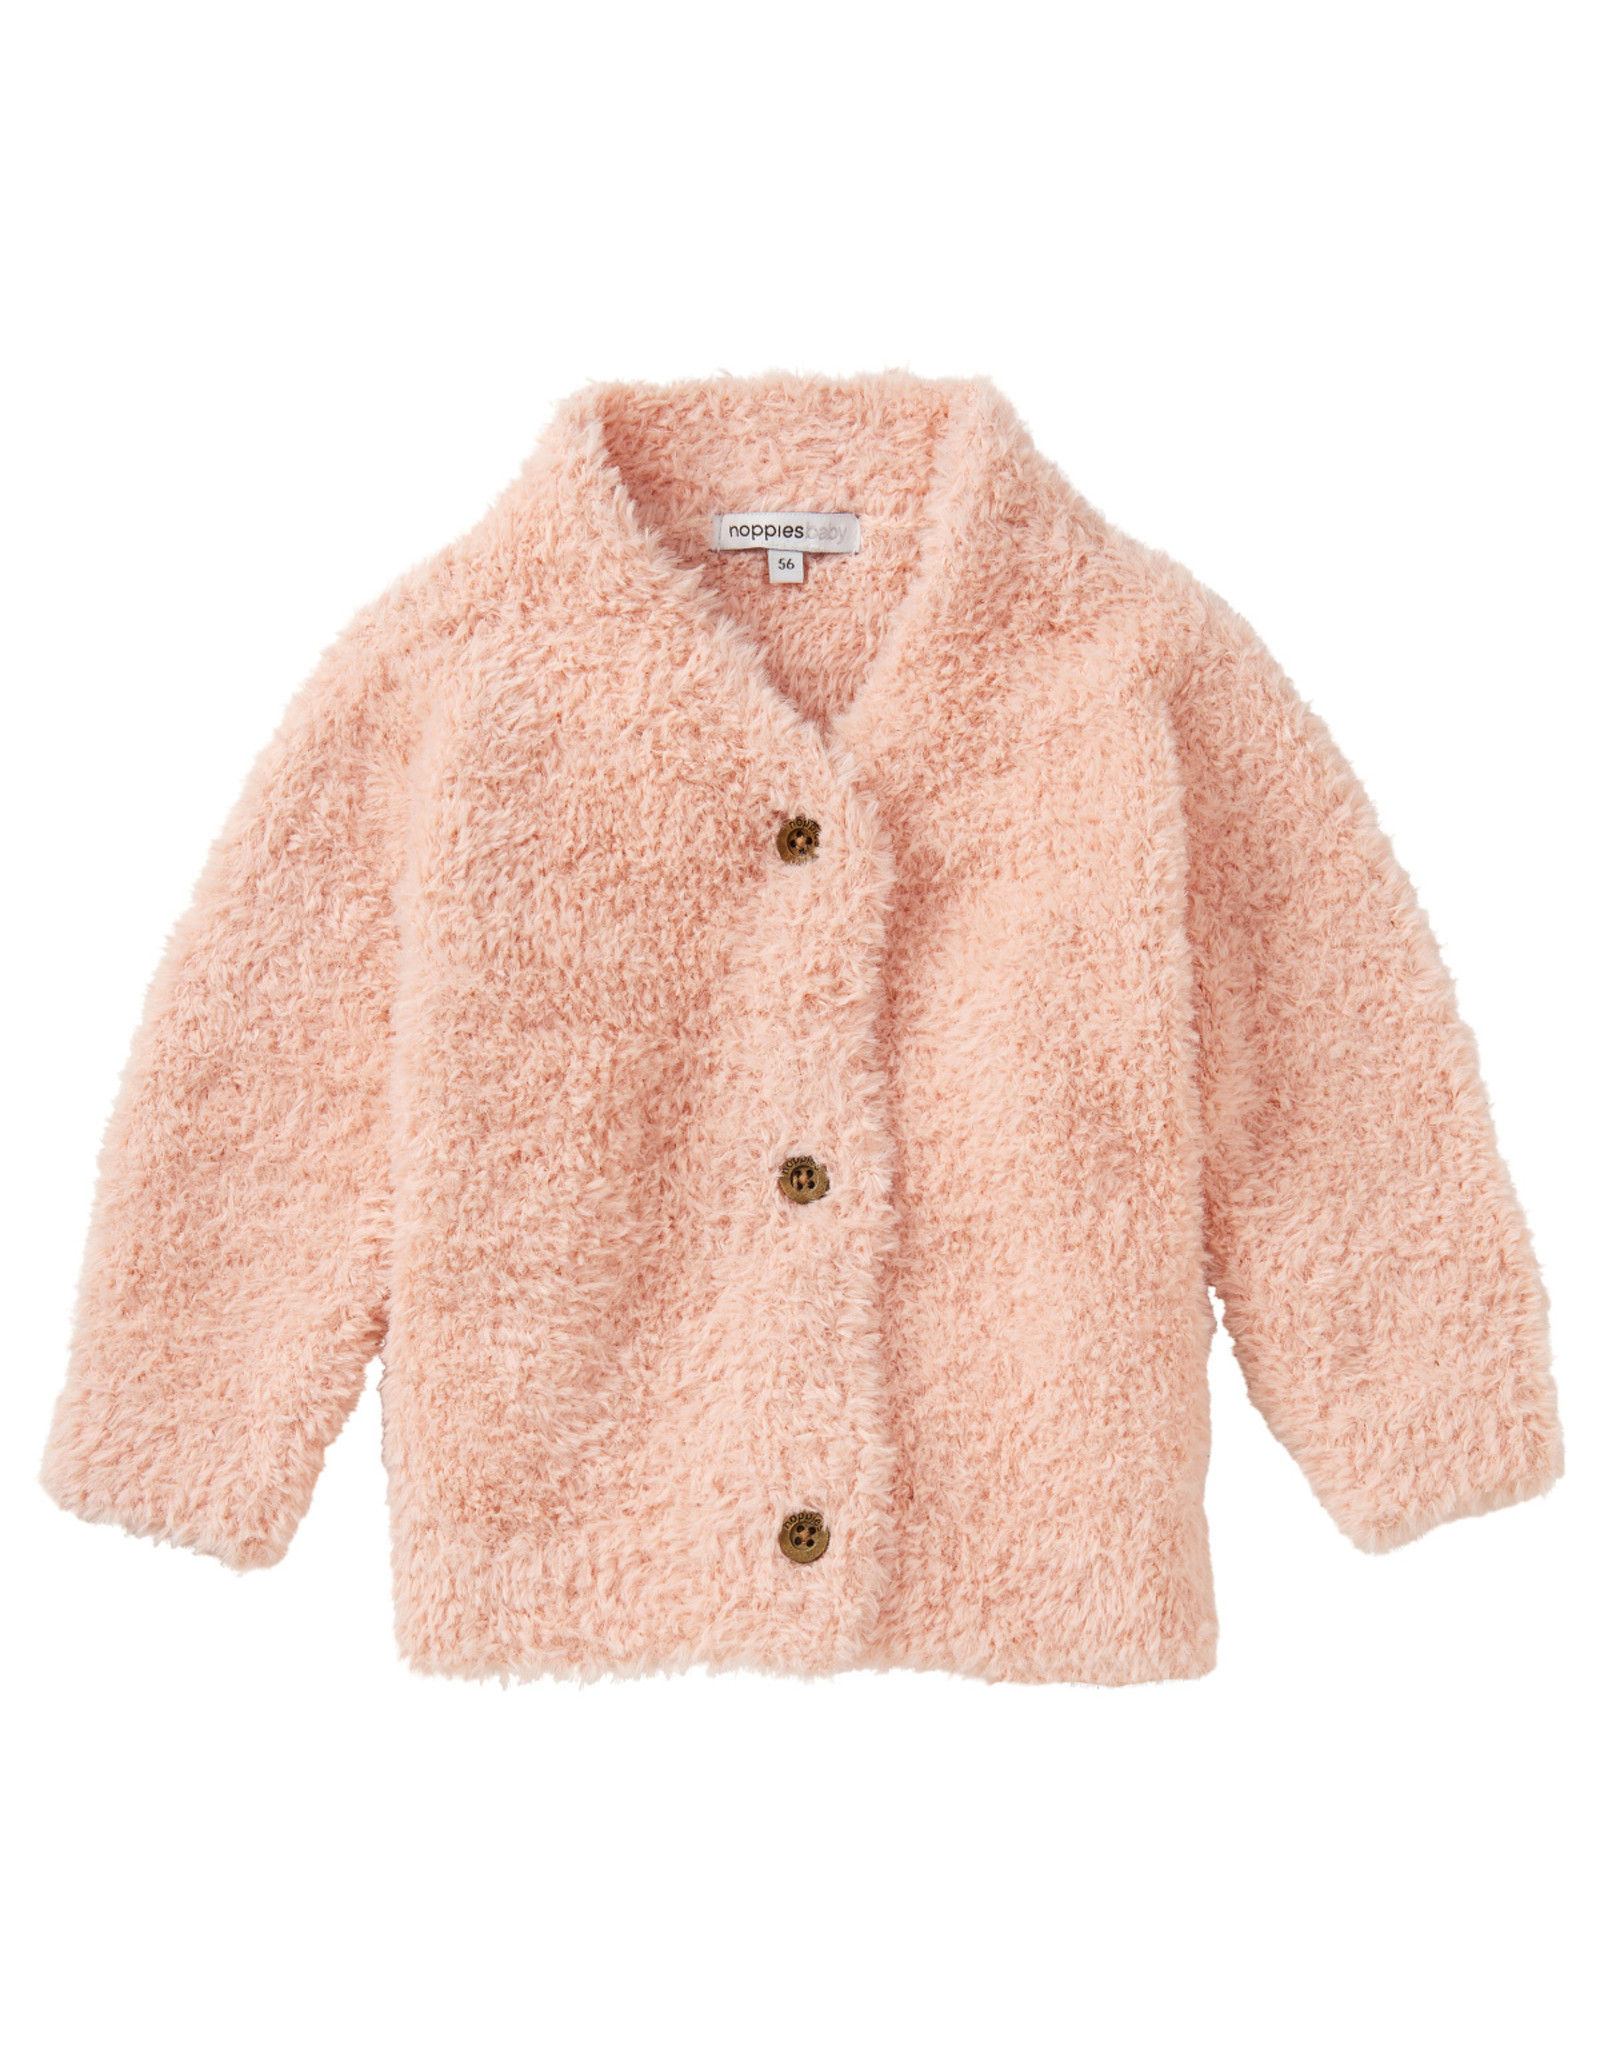 Noppies Noppies G Cardigan LS St. Lucia Cameo Rose